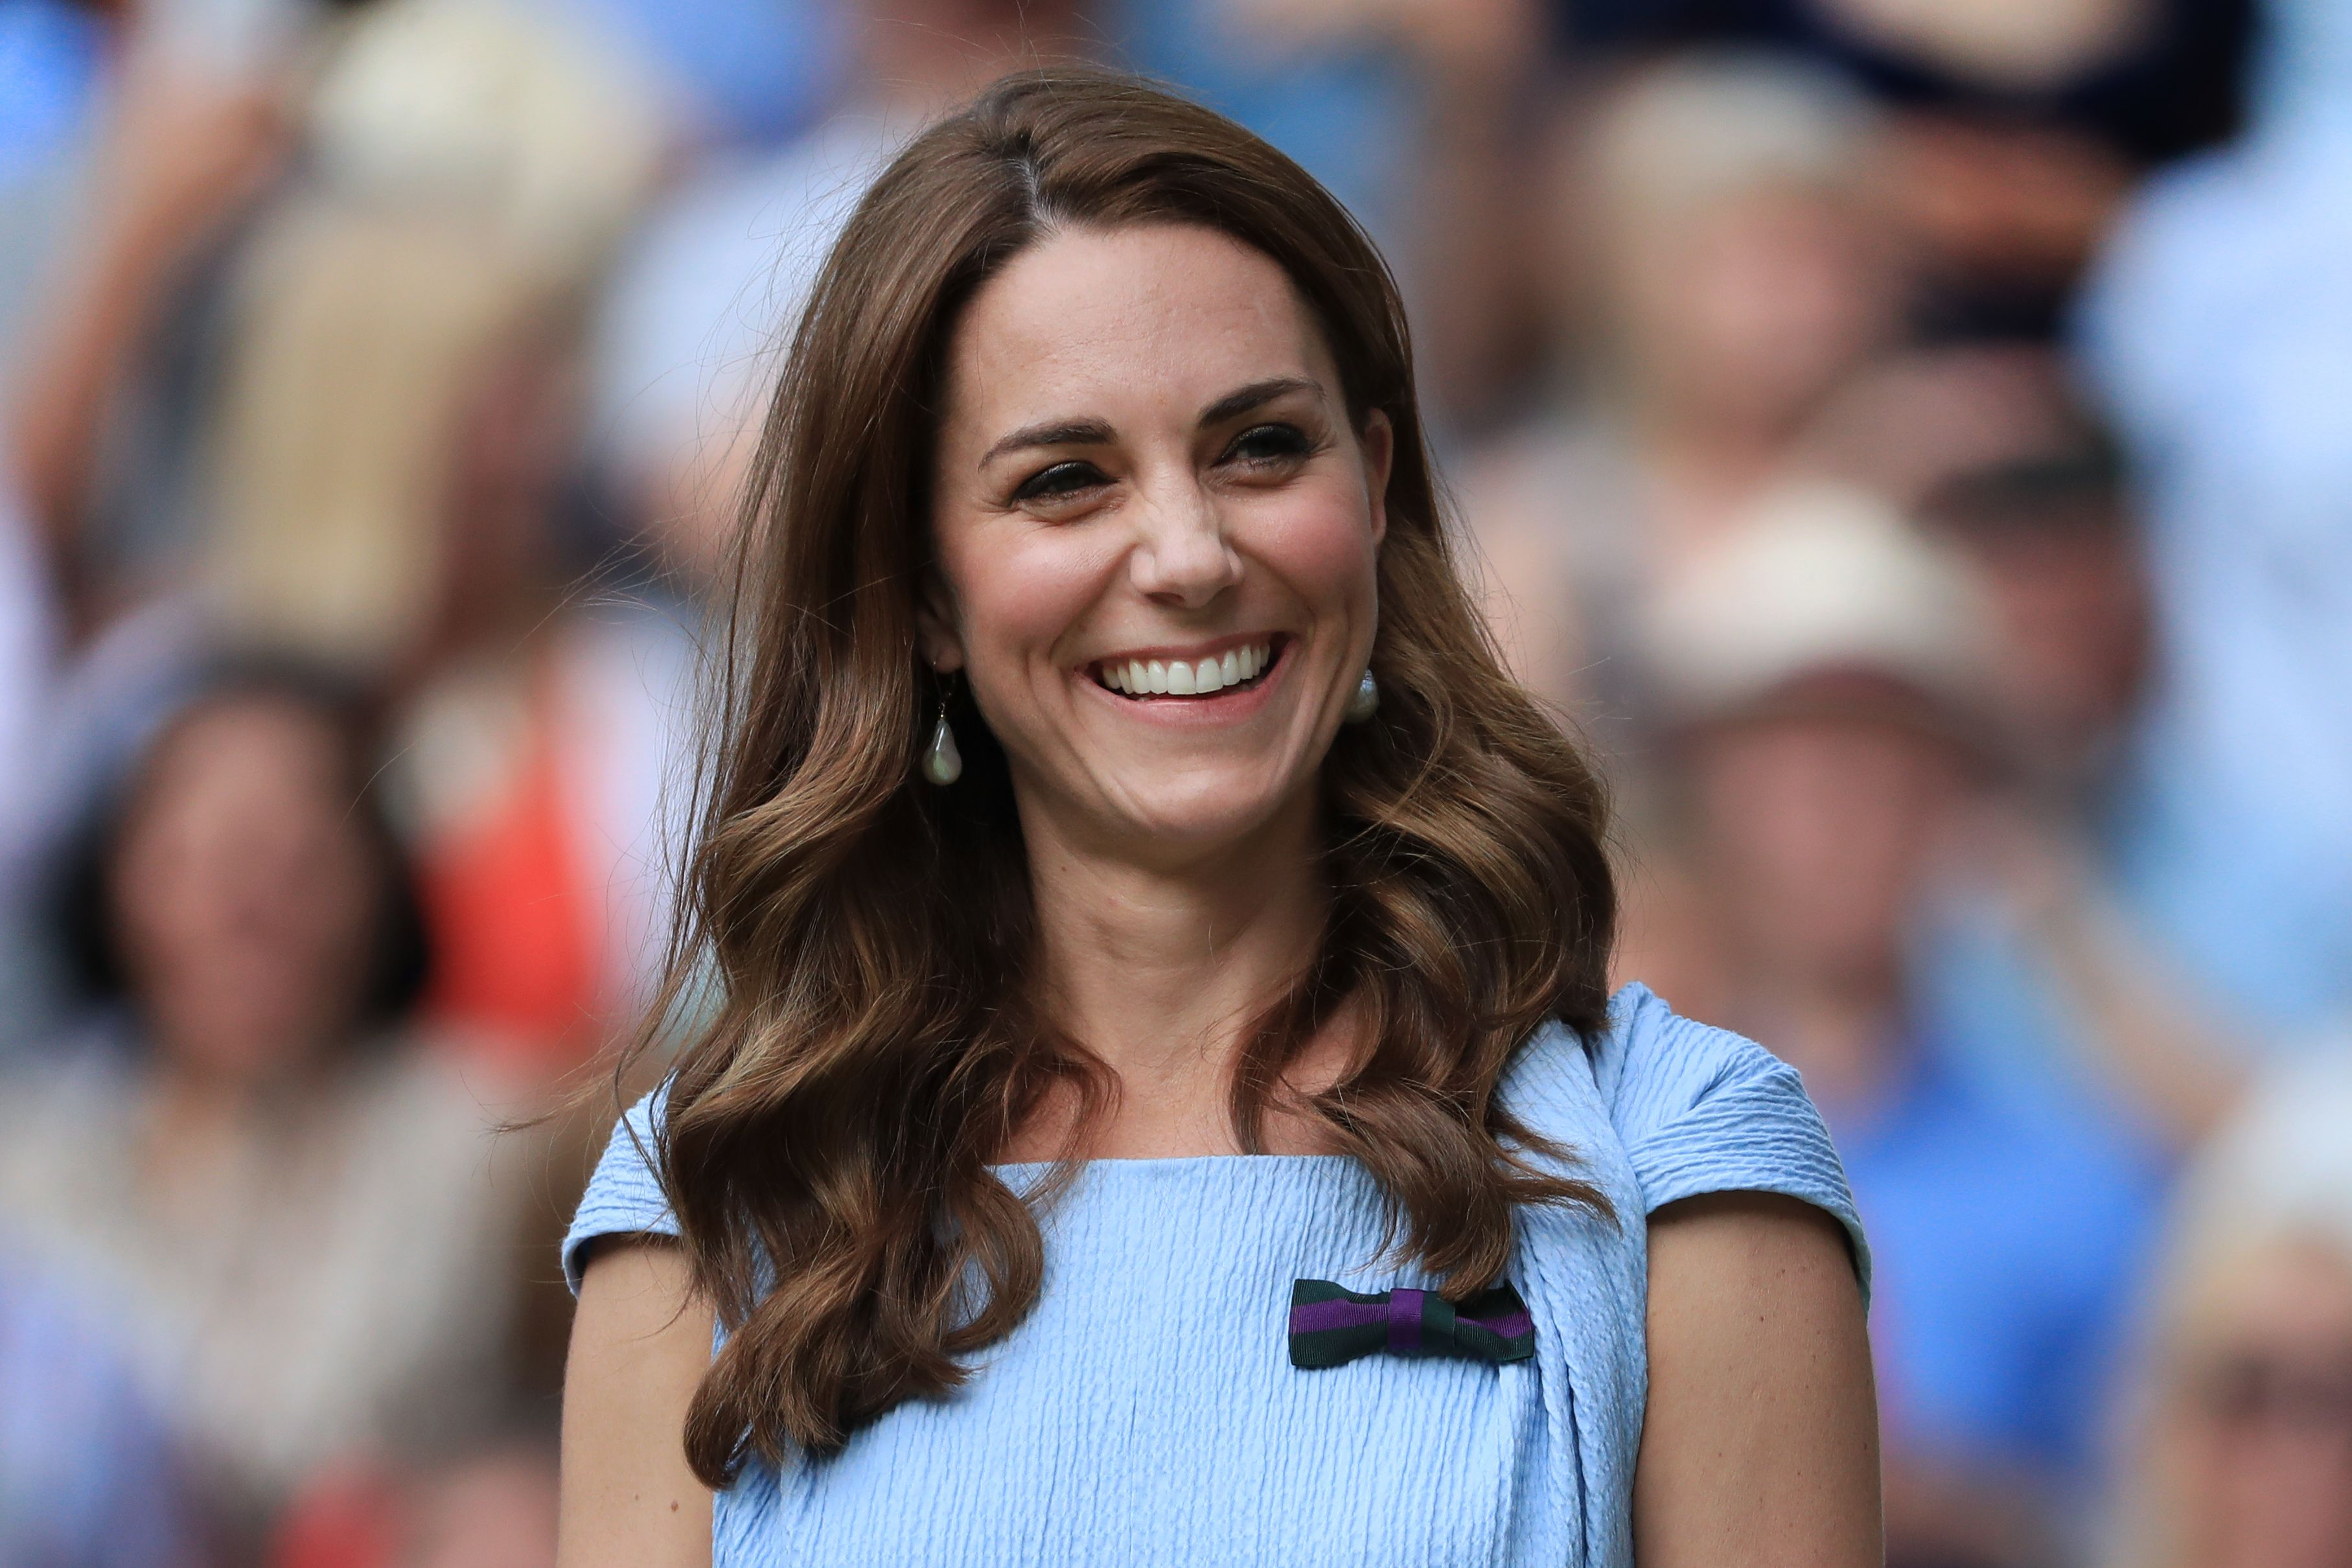 Kensington Palace issues statement denying that the Duchess of Cambridge has had Botox